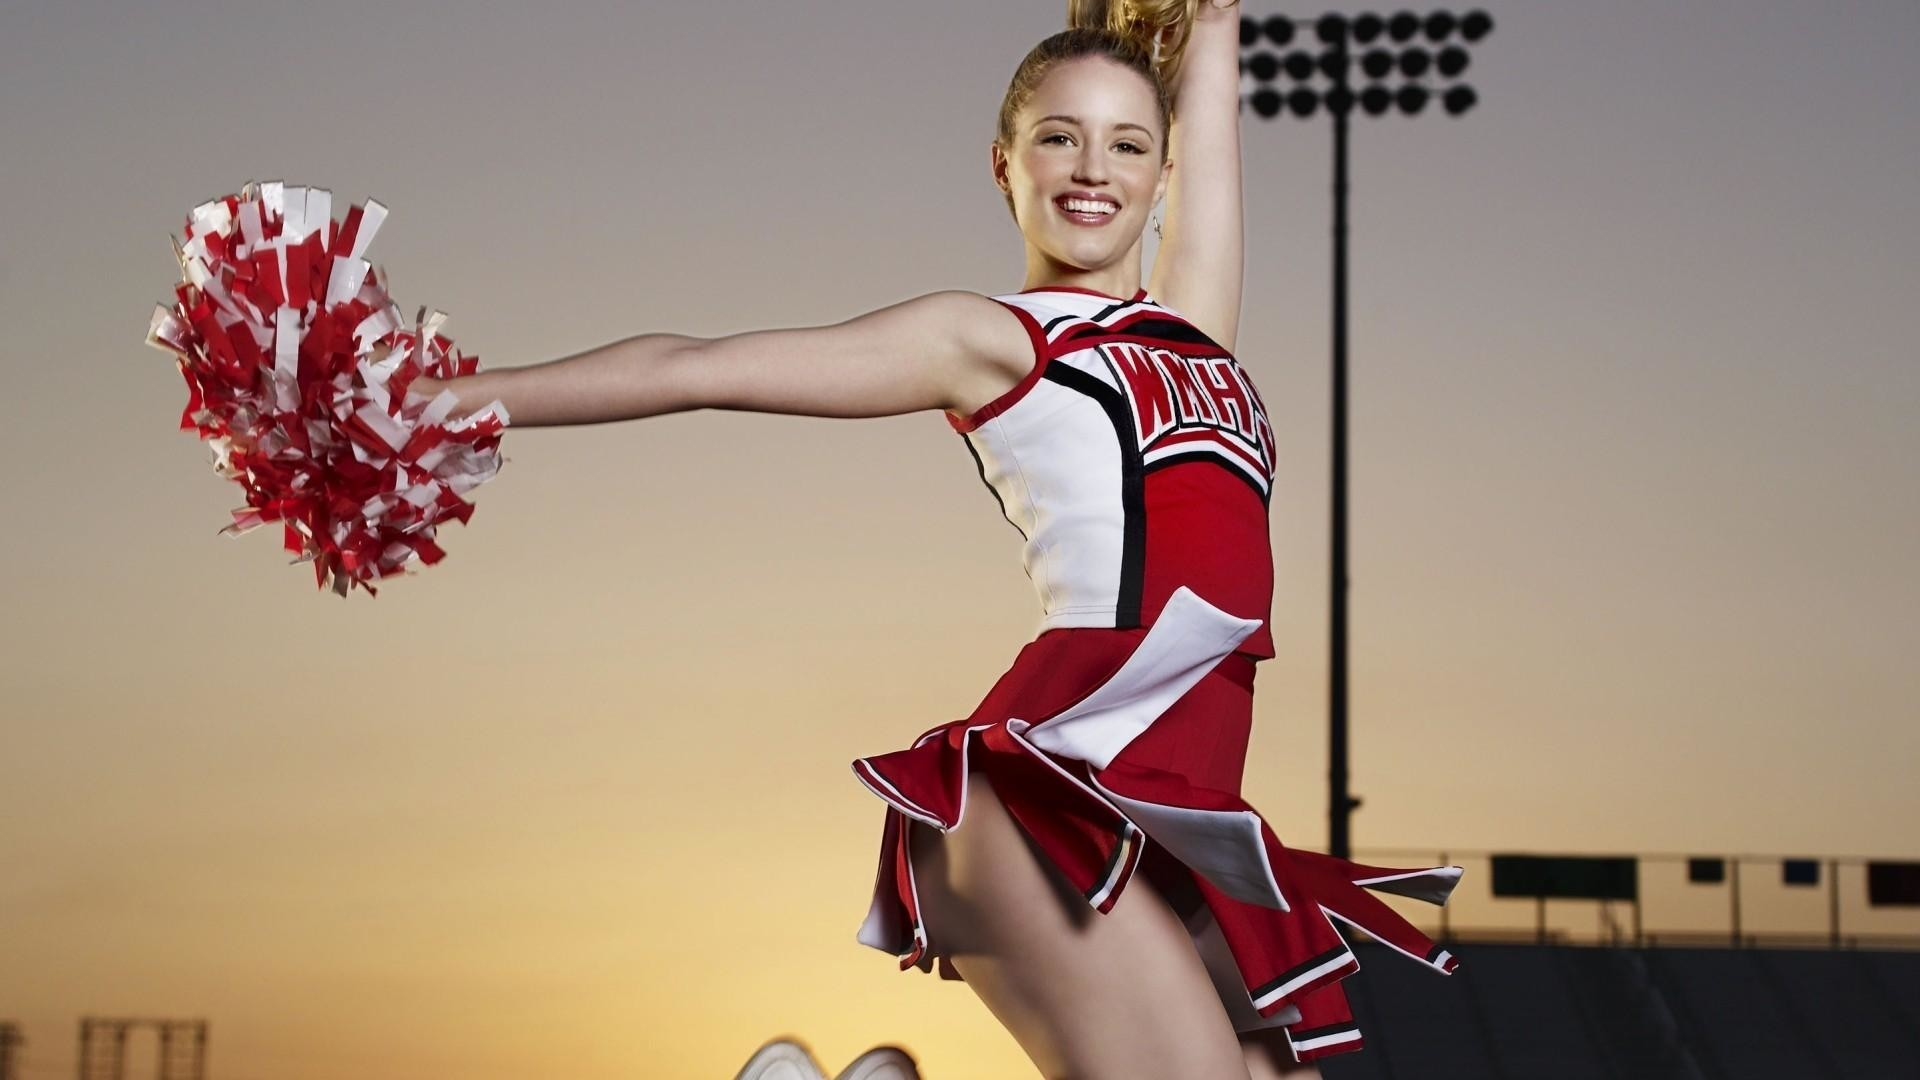 1920x1080 8. cheerleading-wallpapers-HD8-600x338